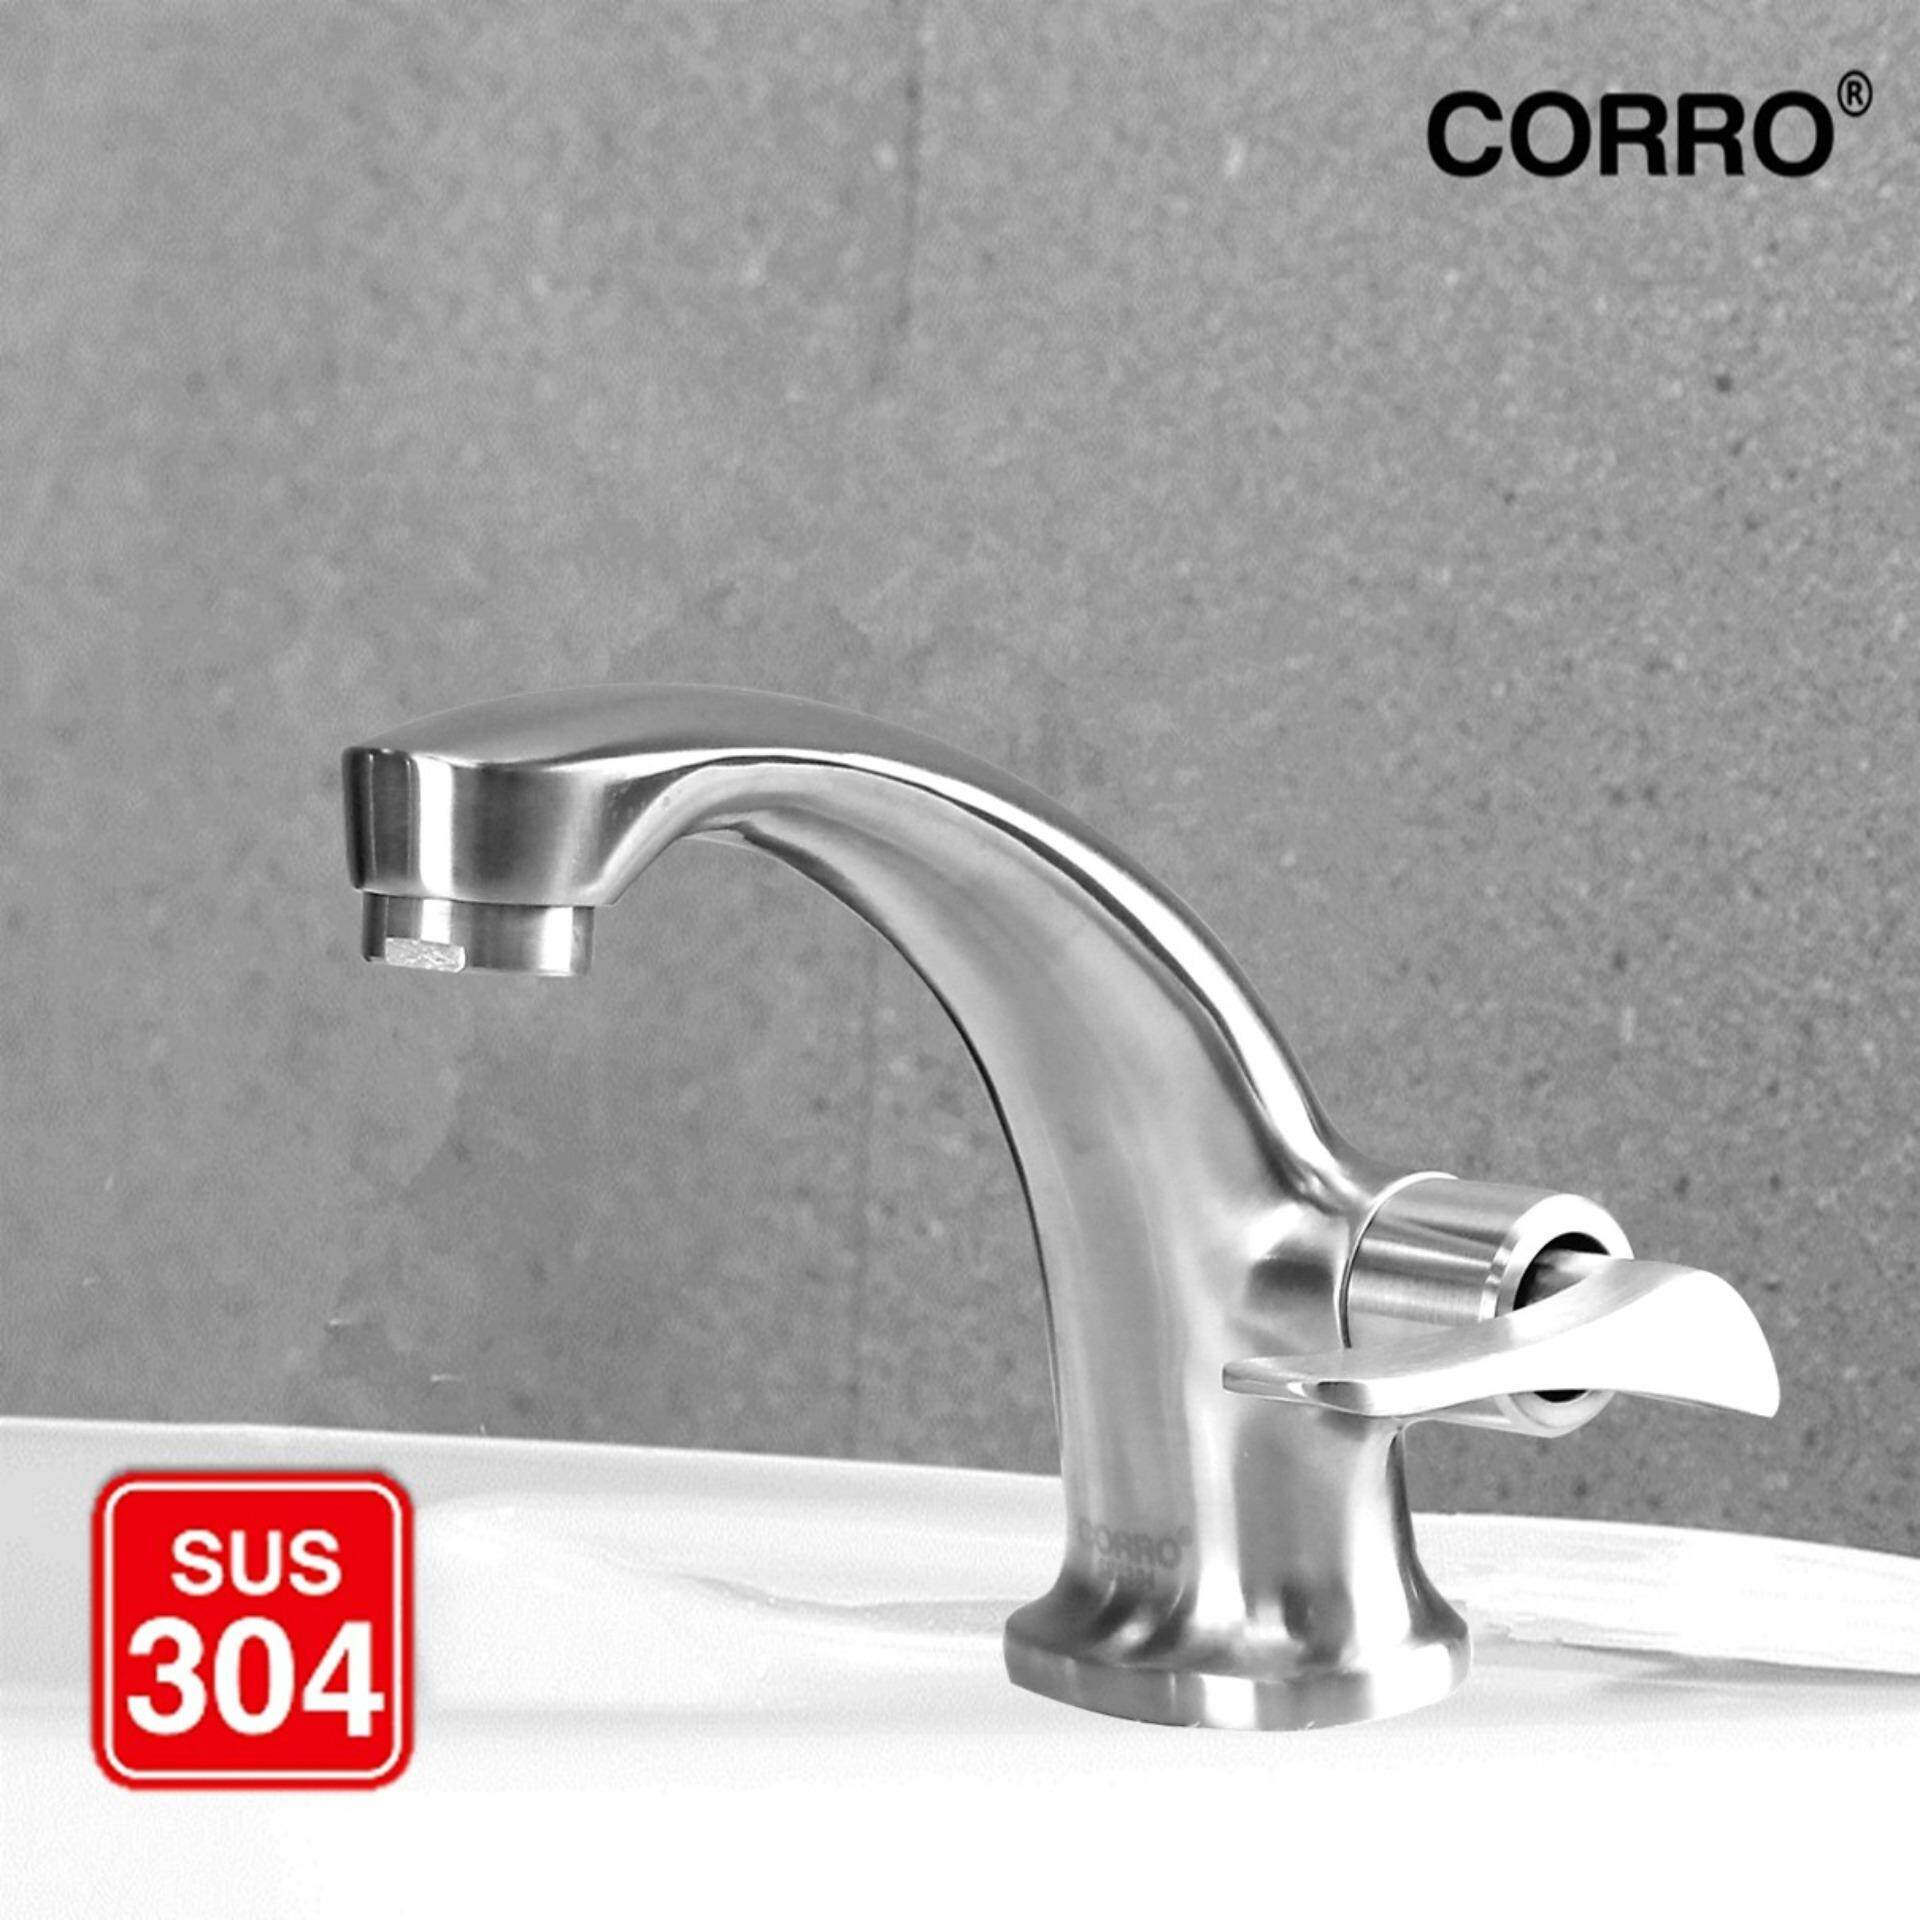 CORRO SUS304 Stainless Steel Basin Cold Tap-CBPT 8314